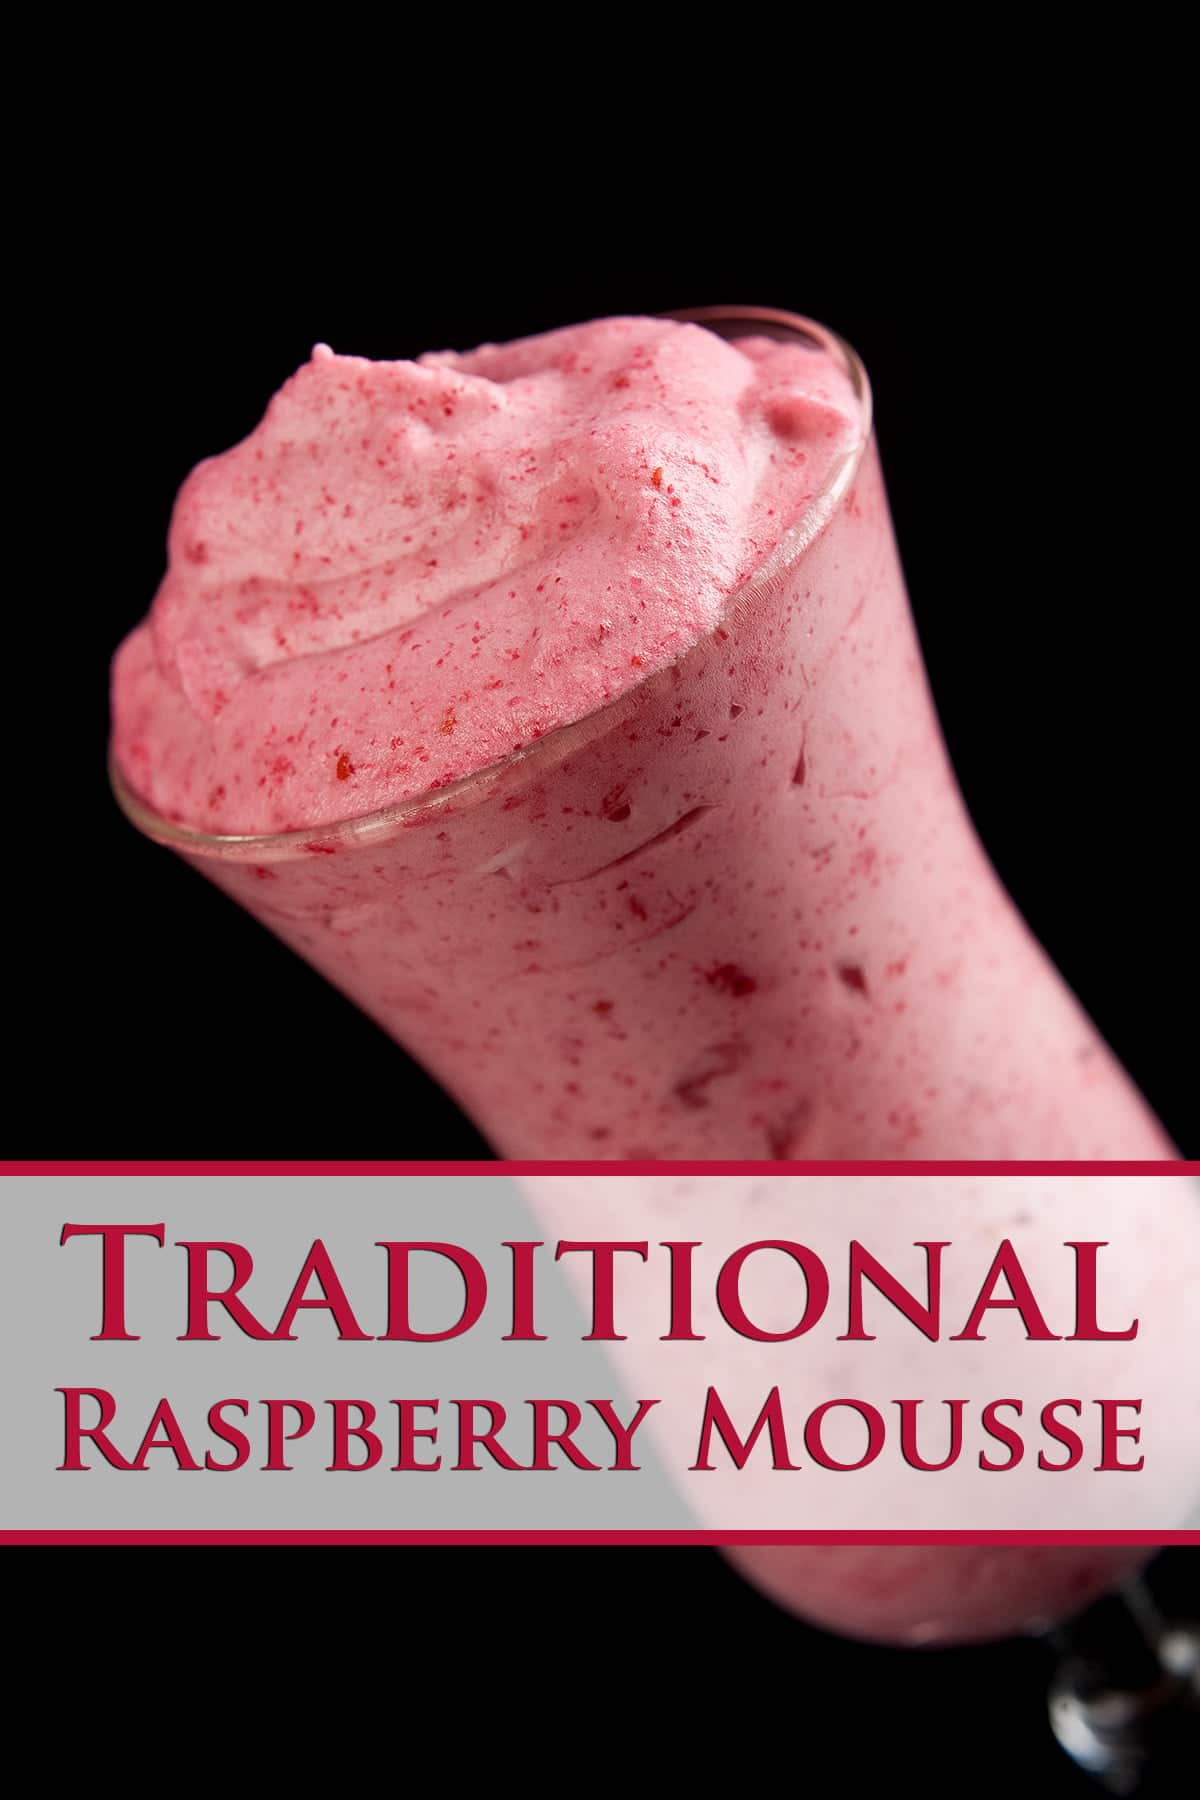 A tall, tulip shaped cocktail glass isfilled with a deep pink raspberry mousse, against a black background, The text overlay says Traditional Raspberry Mousse.